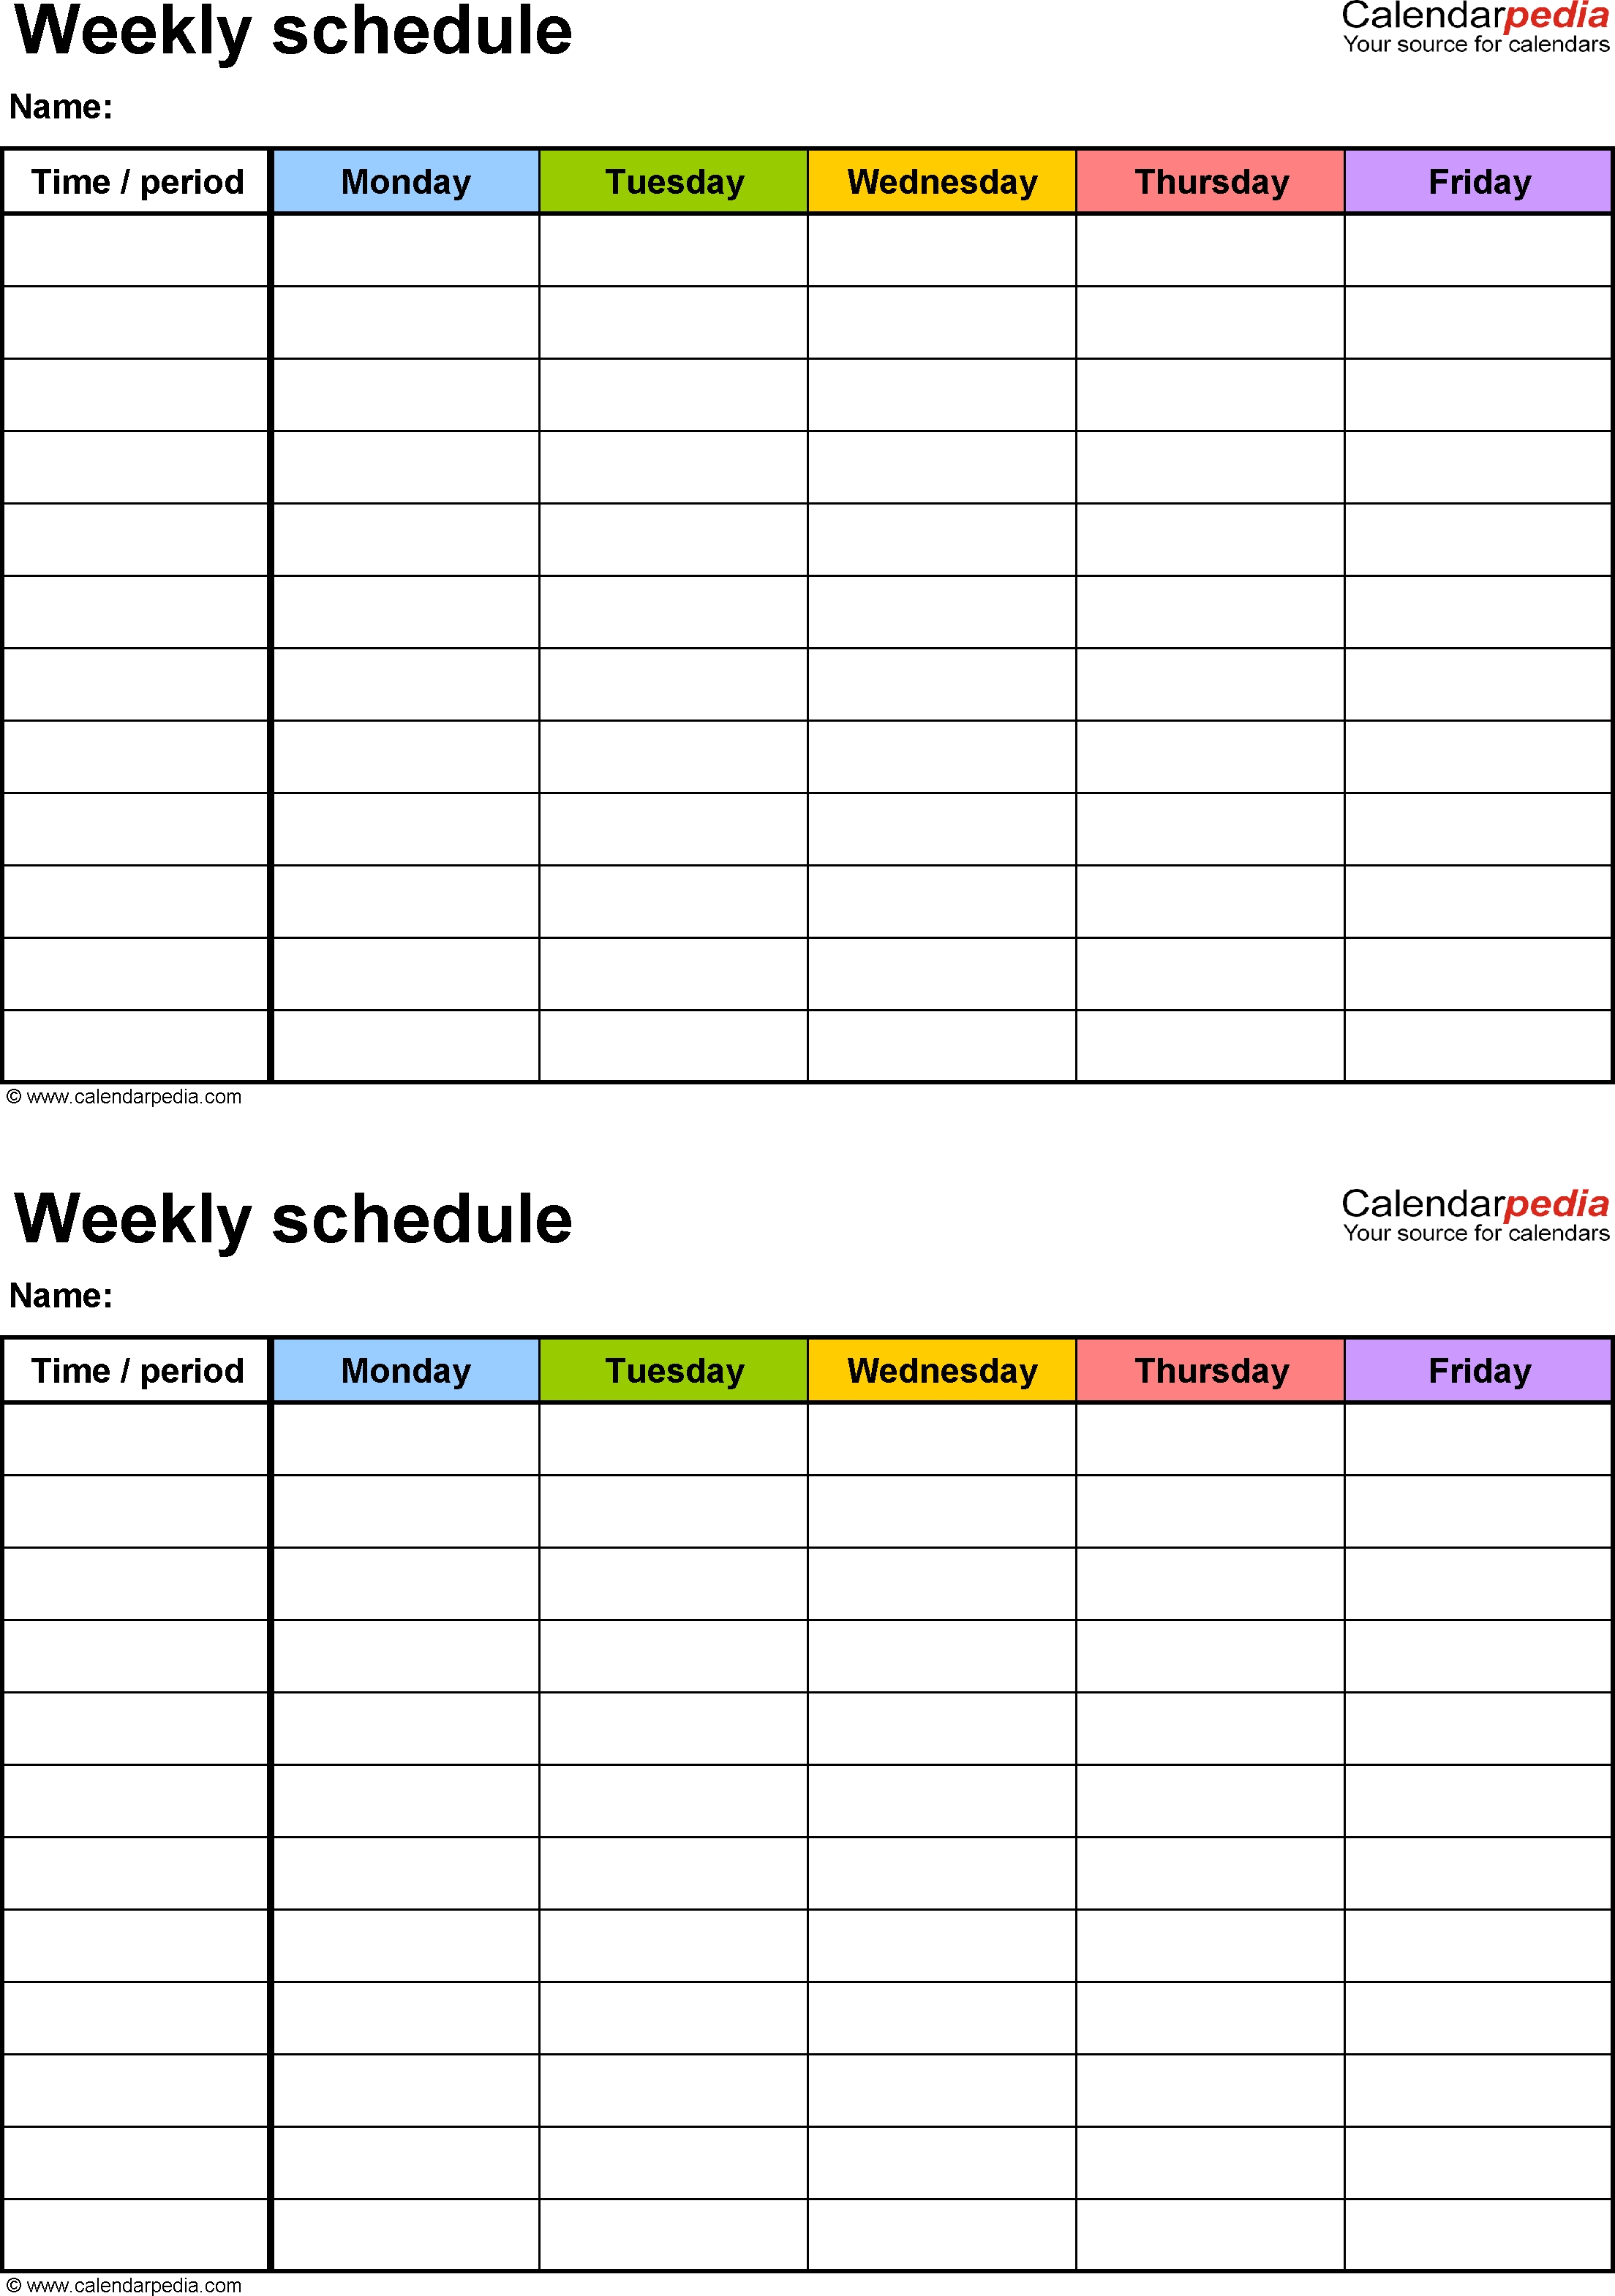 Free Weekly Schedule Templates For Excel - 18 Templates with Monthly Route Schedule Template Free